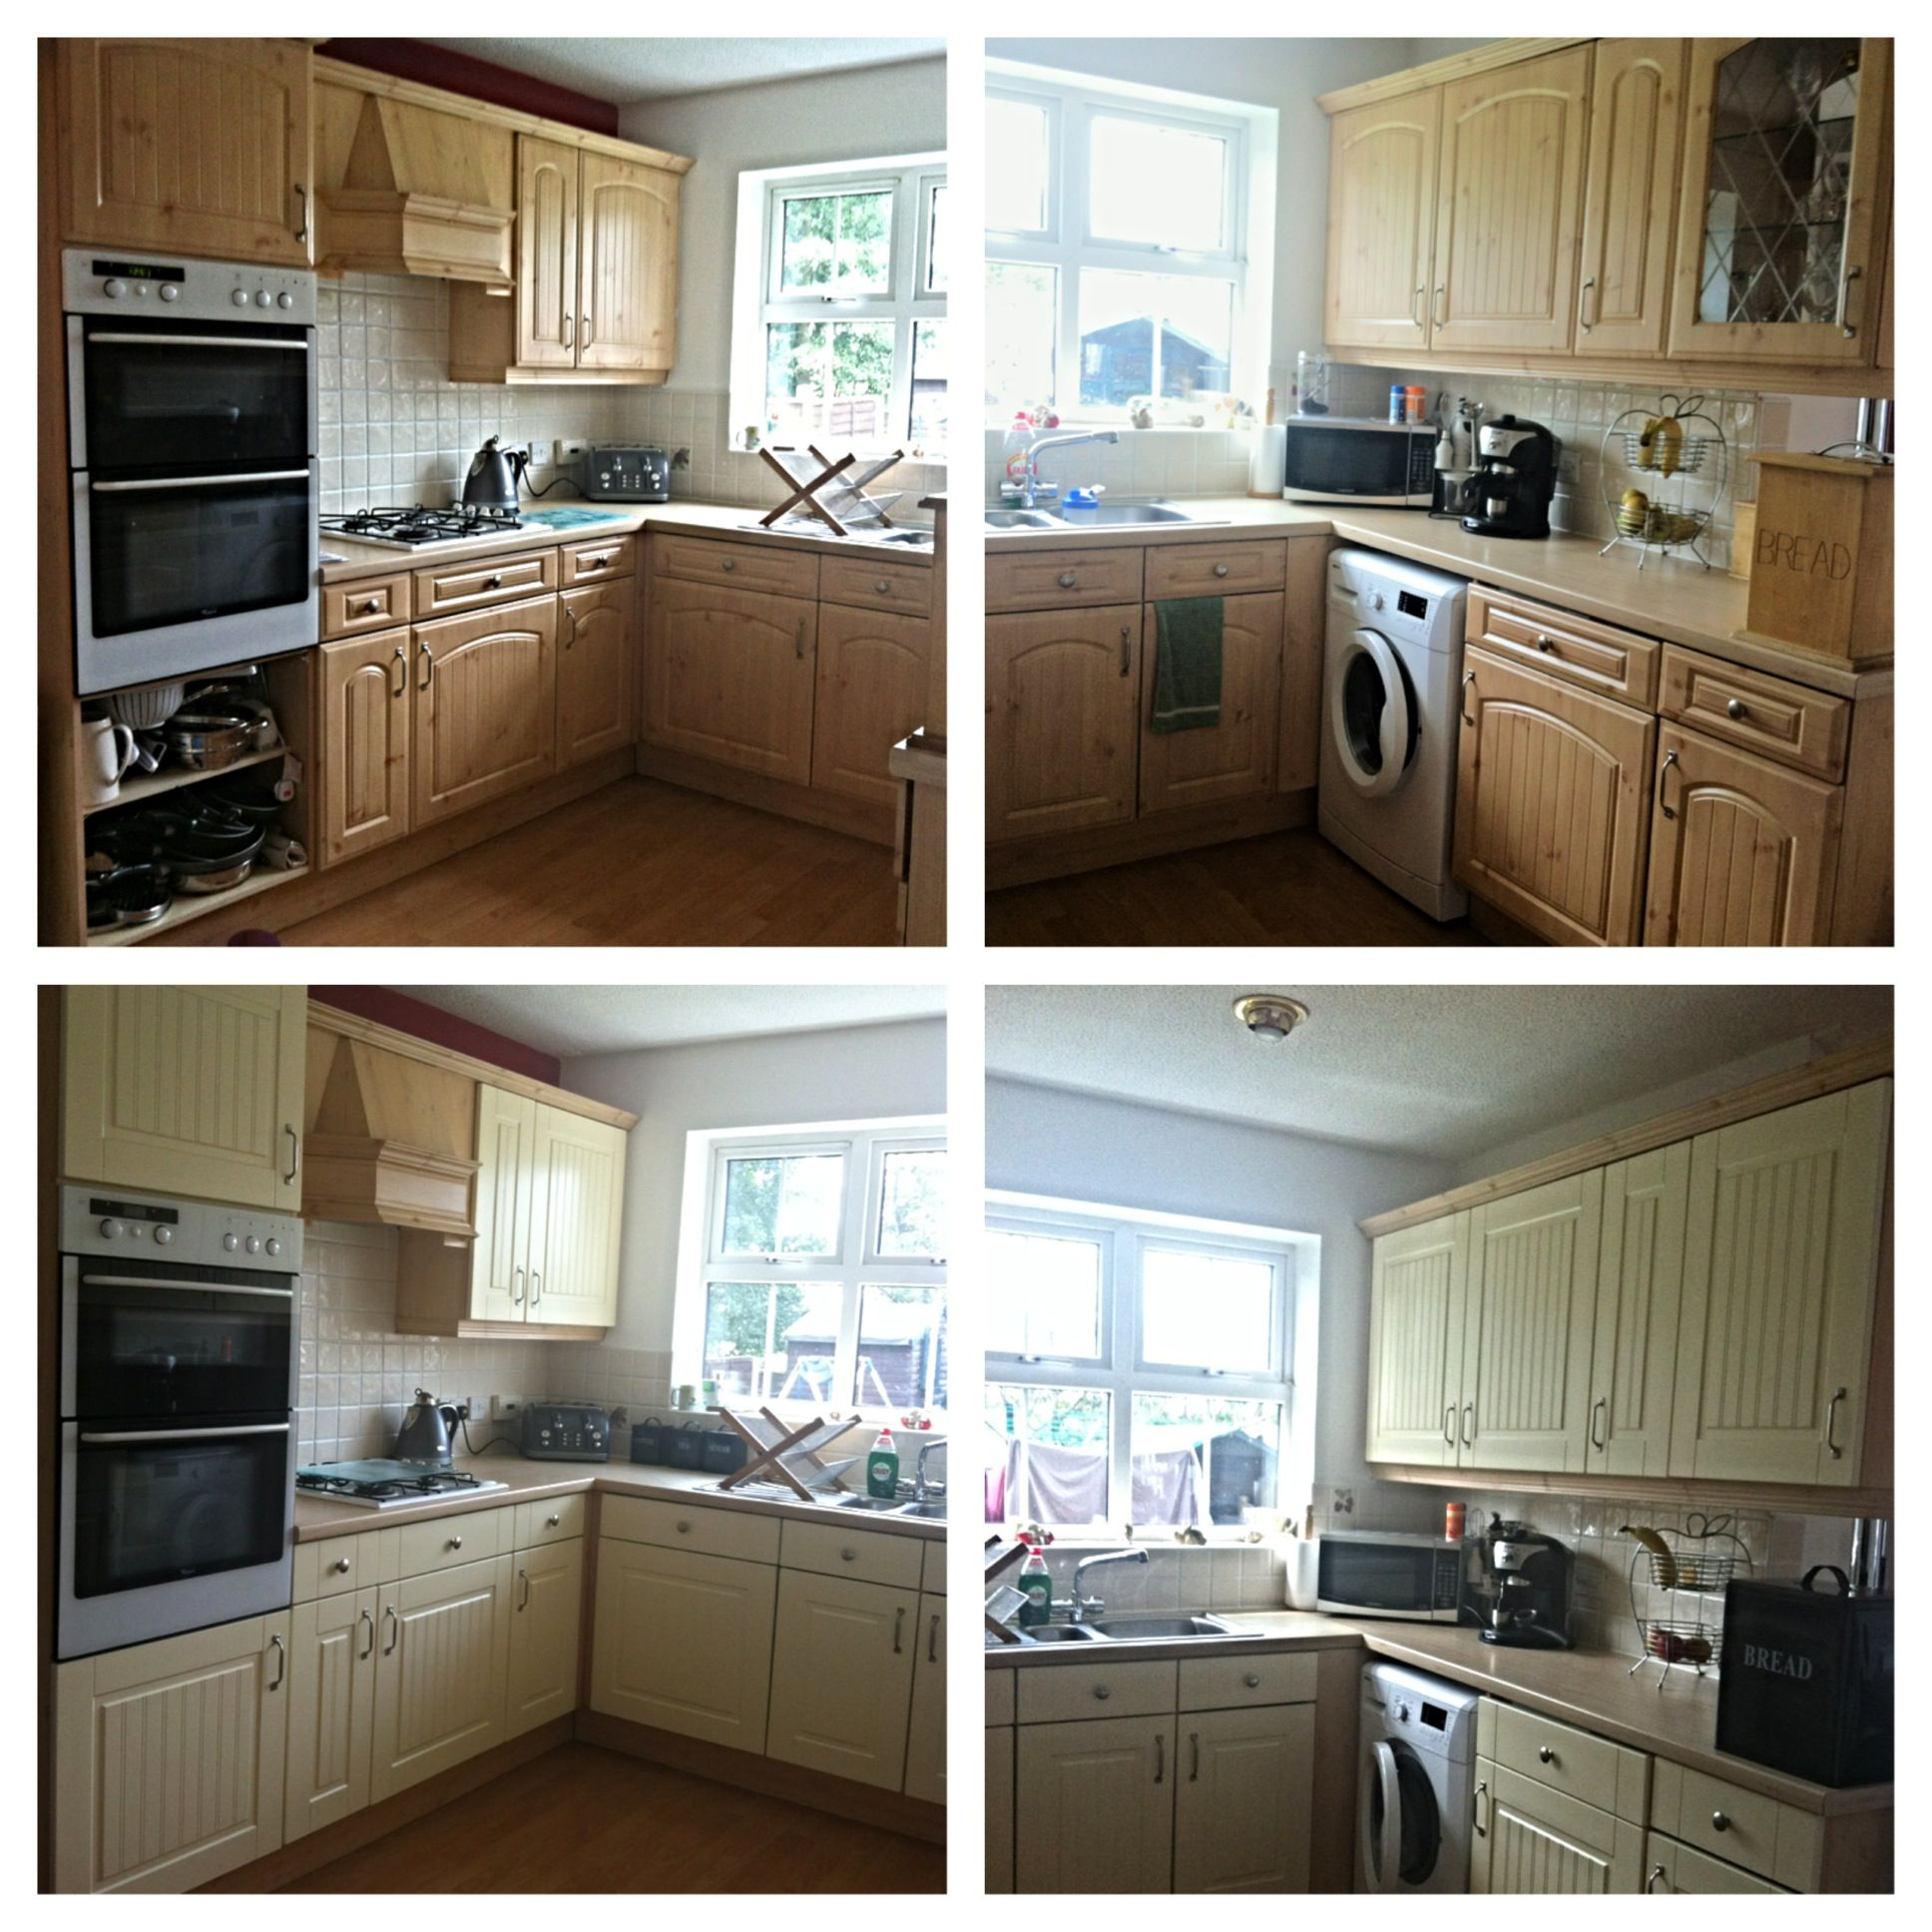 Ms Furniss Kindly Sent Us Pictures Of Her Updated Kitchen